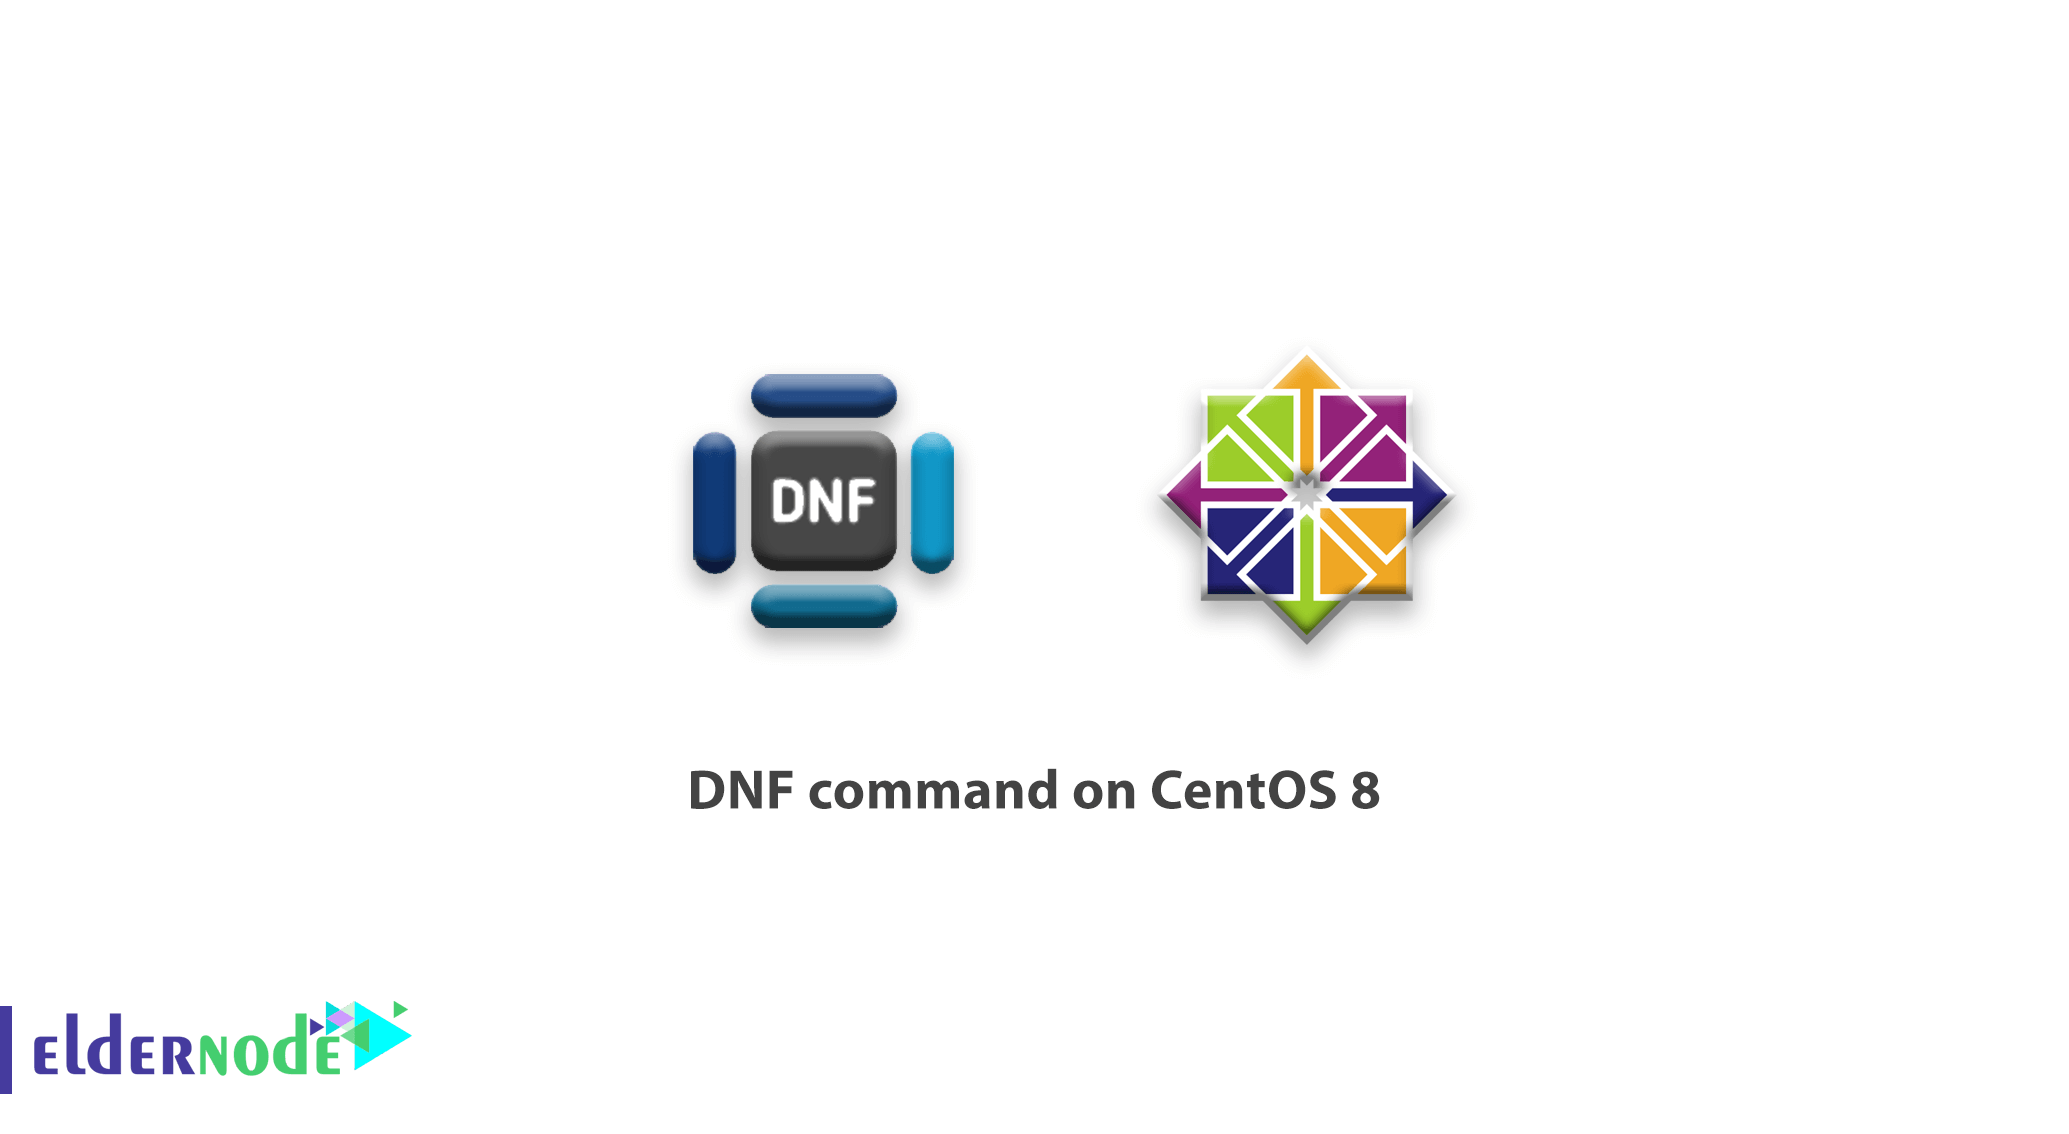 DNF command on CentOS 8